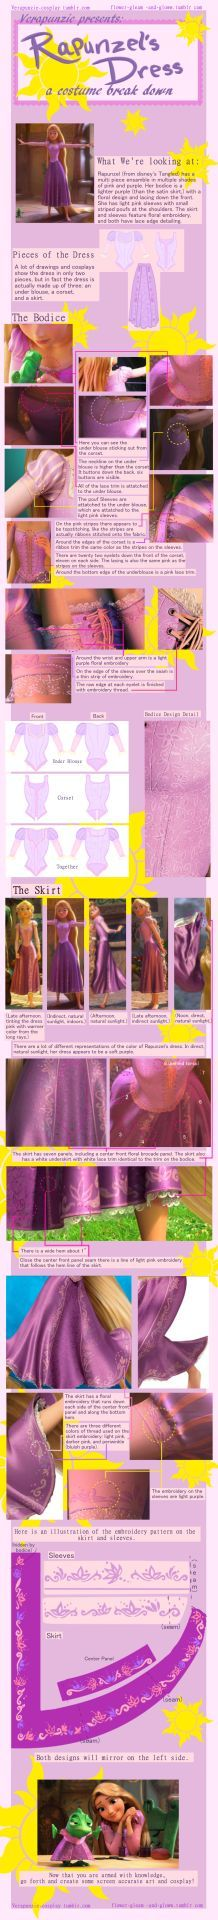 "flower-gleam-and-gloww: ""Rapunzel has a very complicated costume, and good reference photos are hard to come by! I took it upon myself to put together a detailed, in depth explanation of her costume and how it works. I hope it is descriptive enough..."